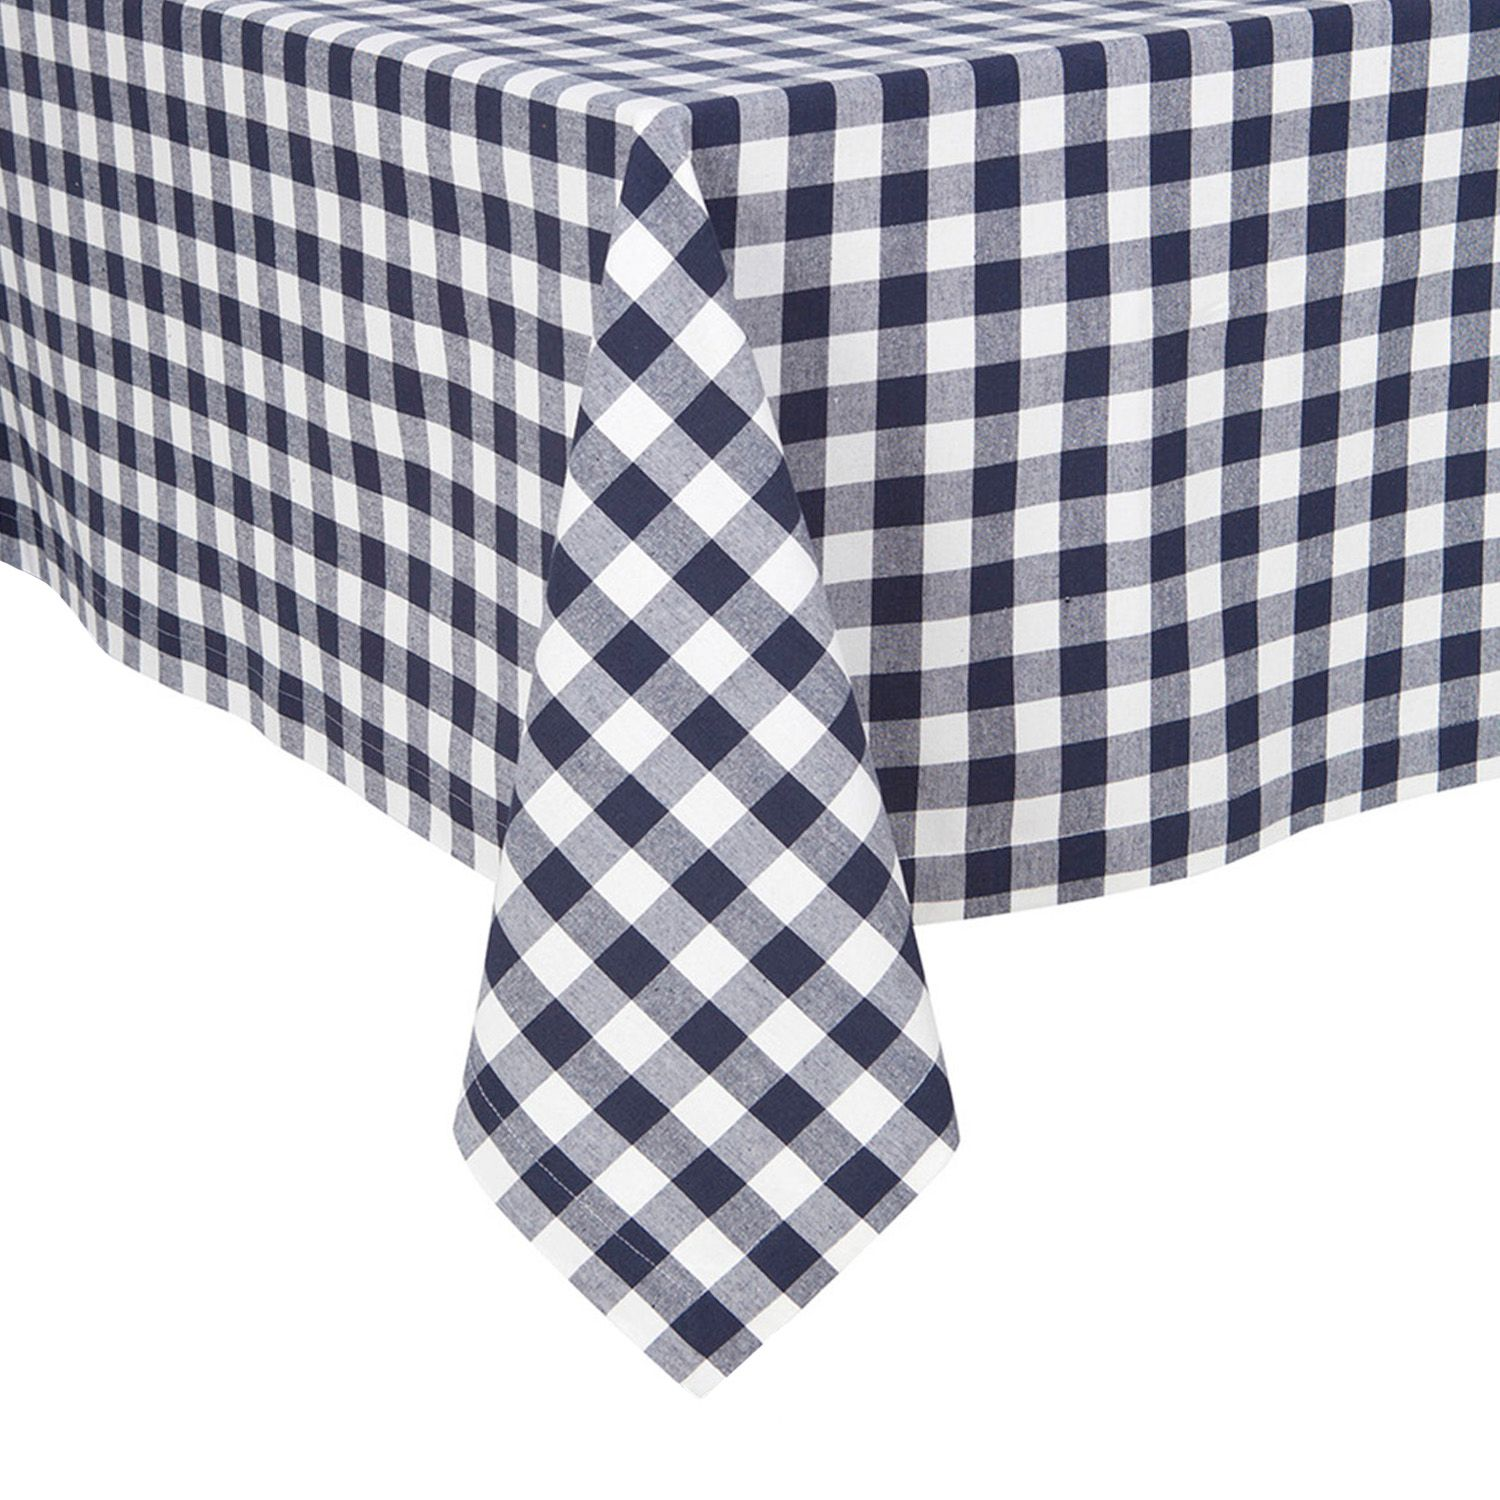 Delightful KAF HOME Buffalo Check Tablecloth